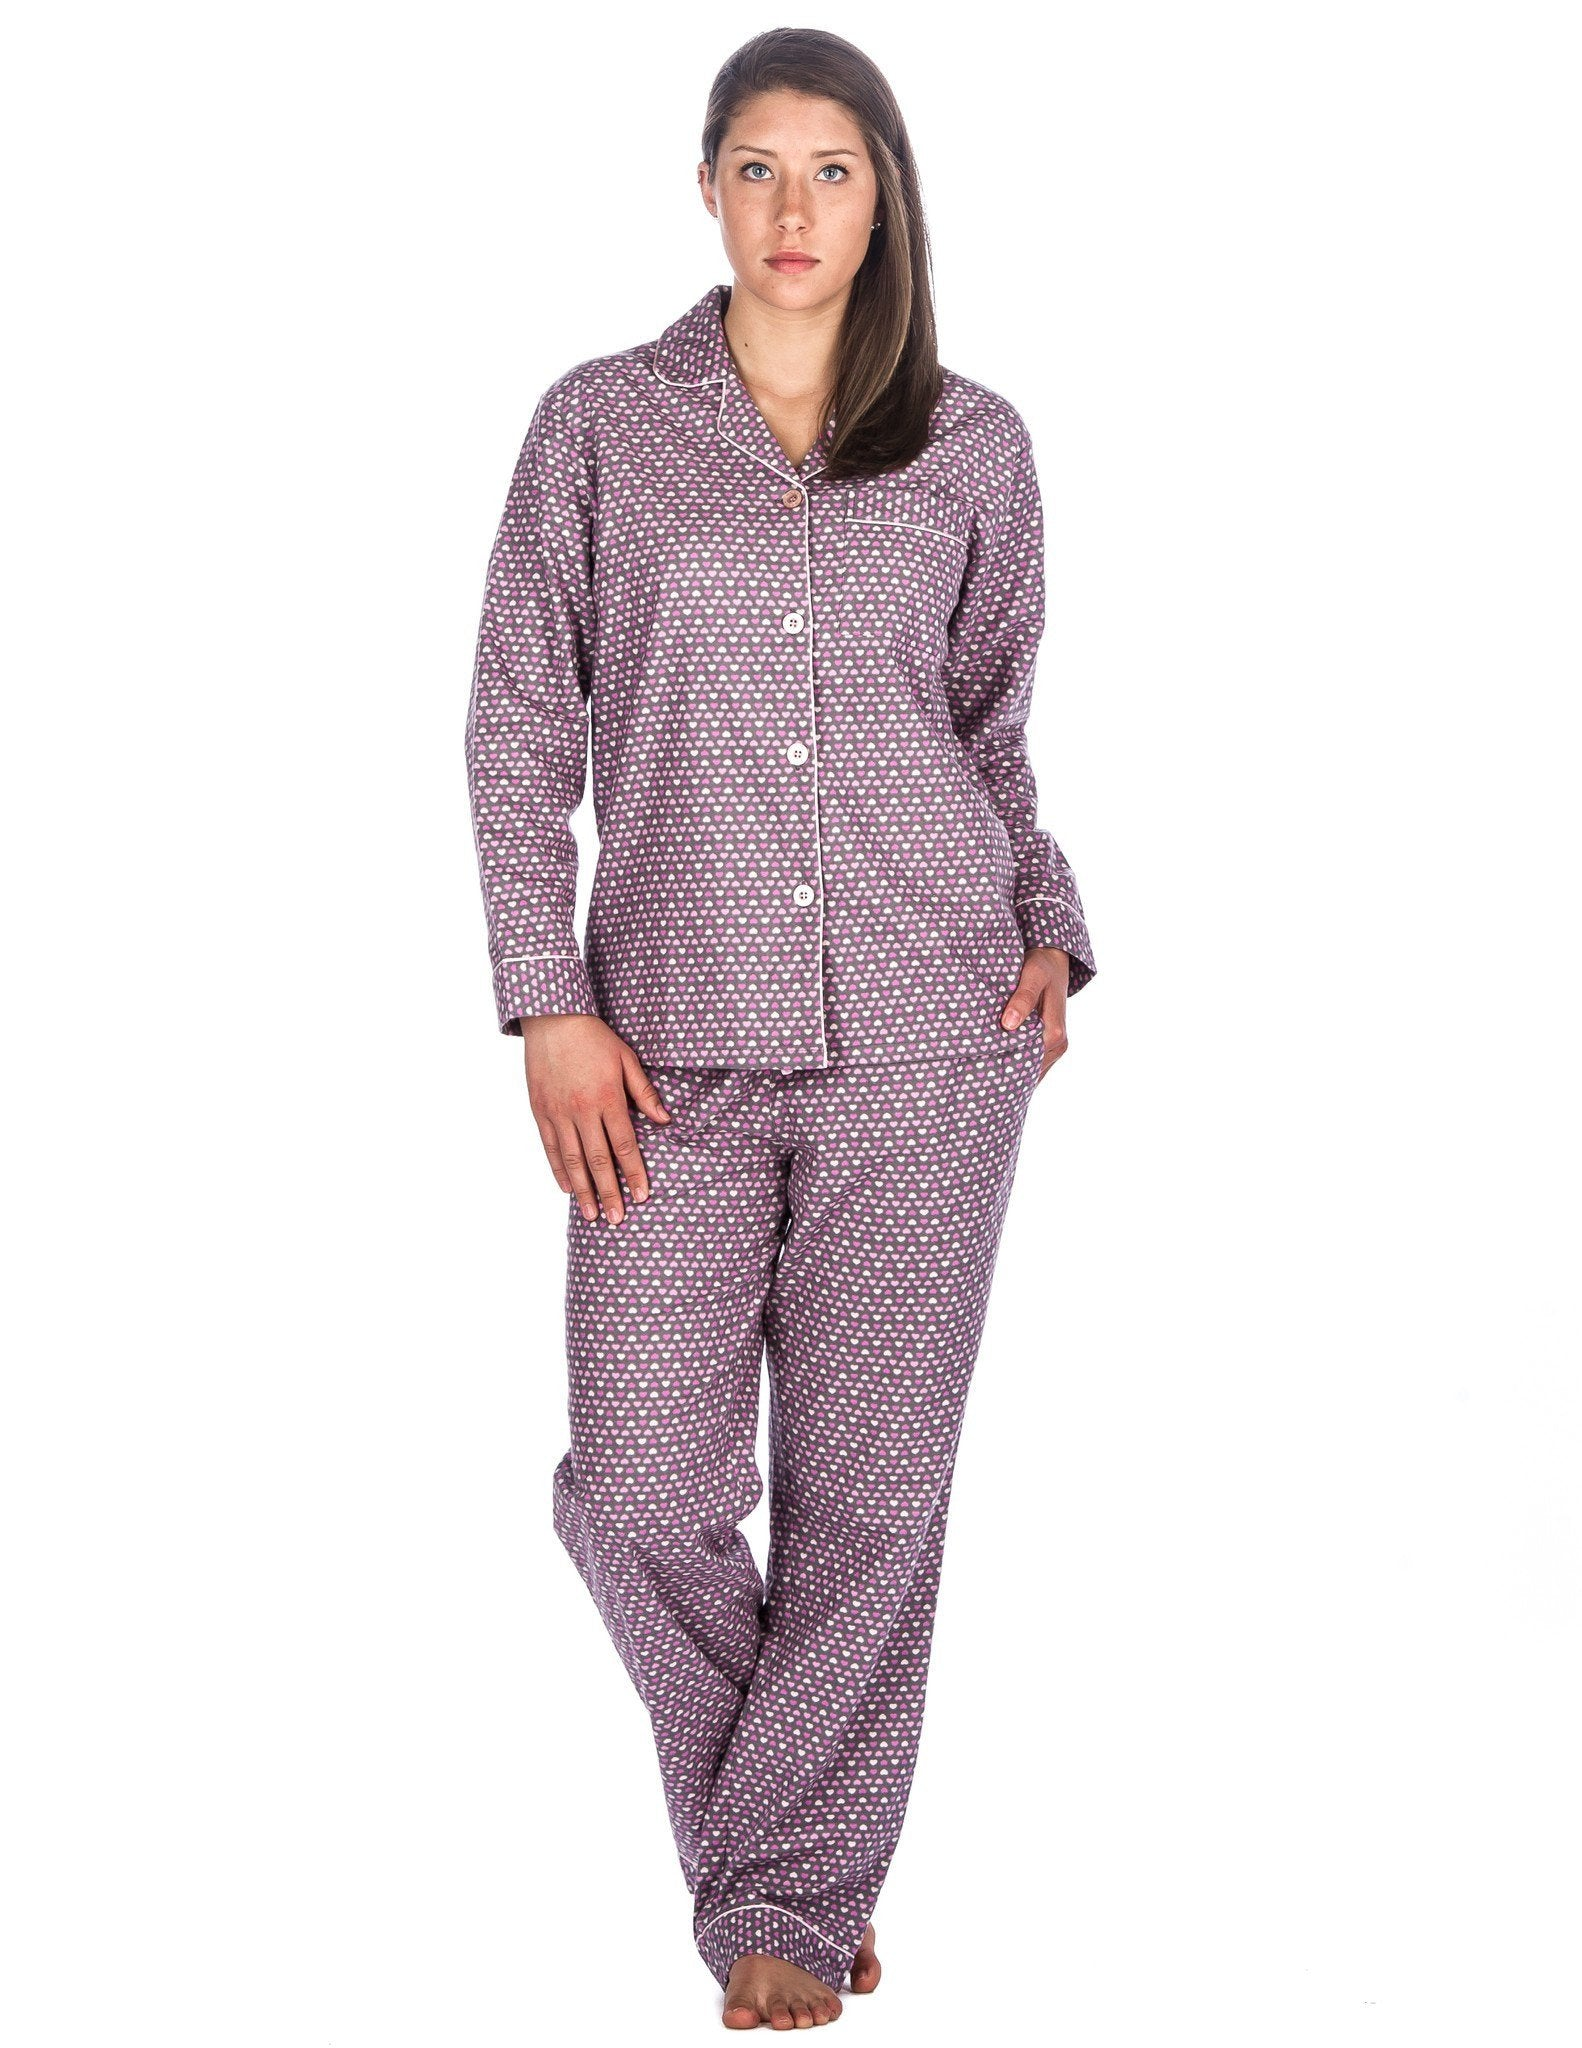 Realxed Fit Womens 100% Cotton Flannel Pajama Sleepwear Set - Hearts Pink